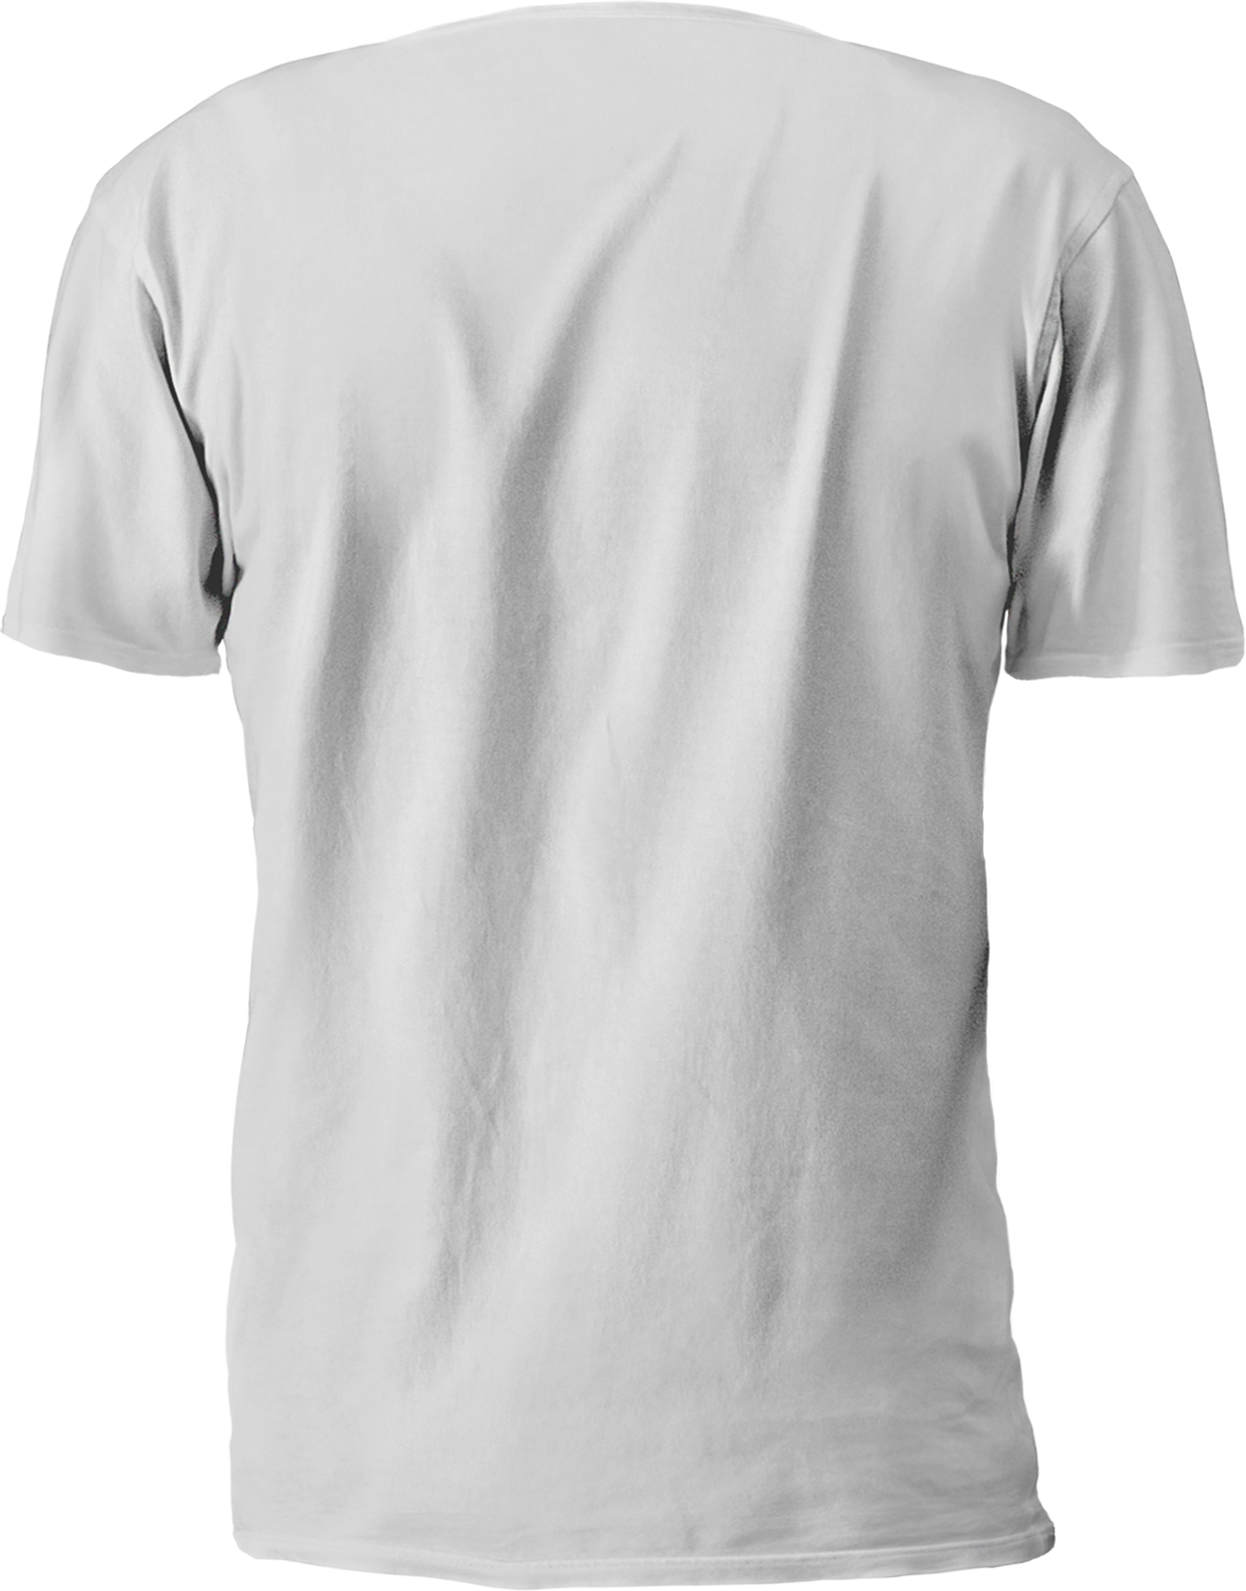 T shirt white png - Sorry